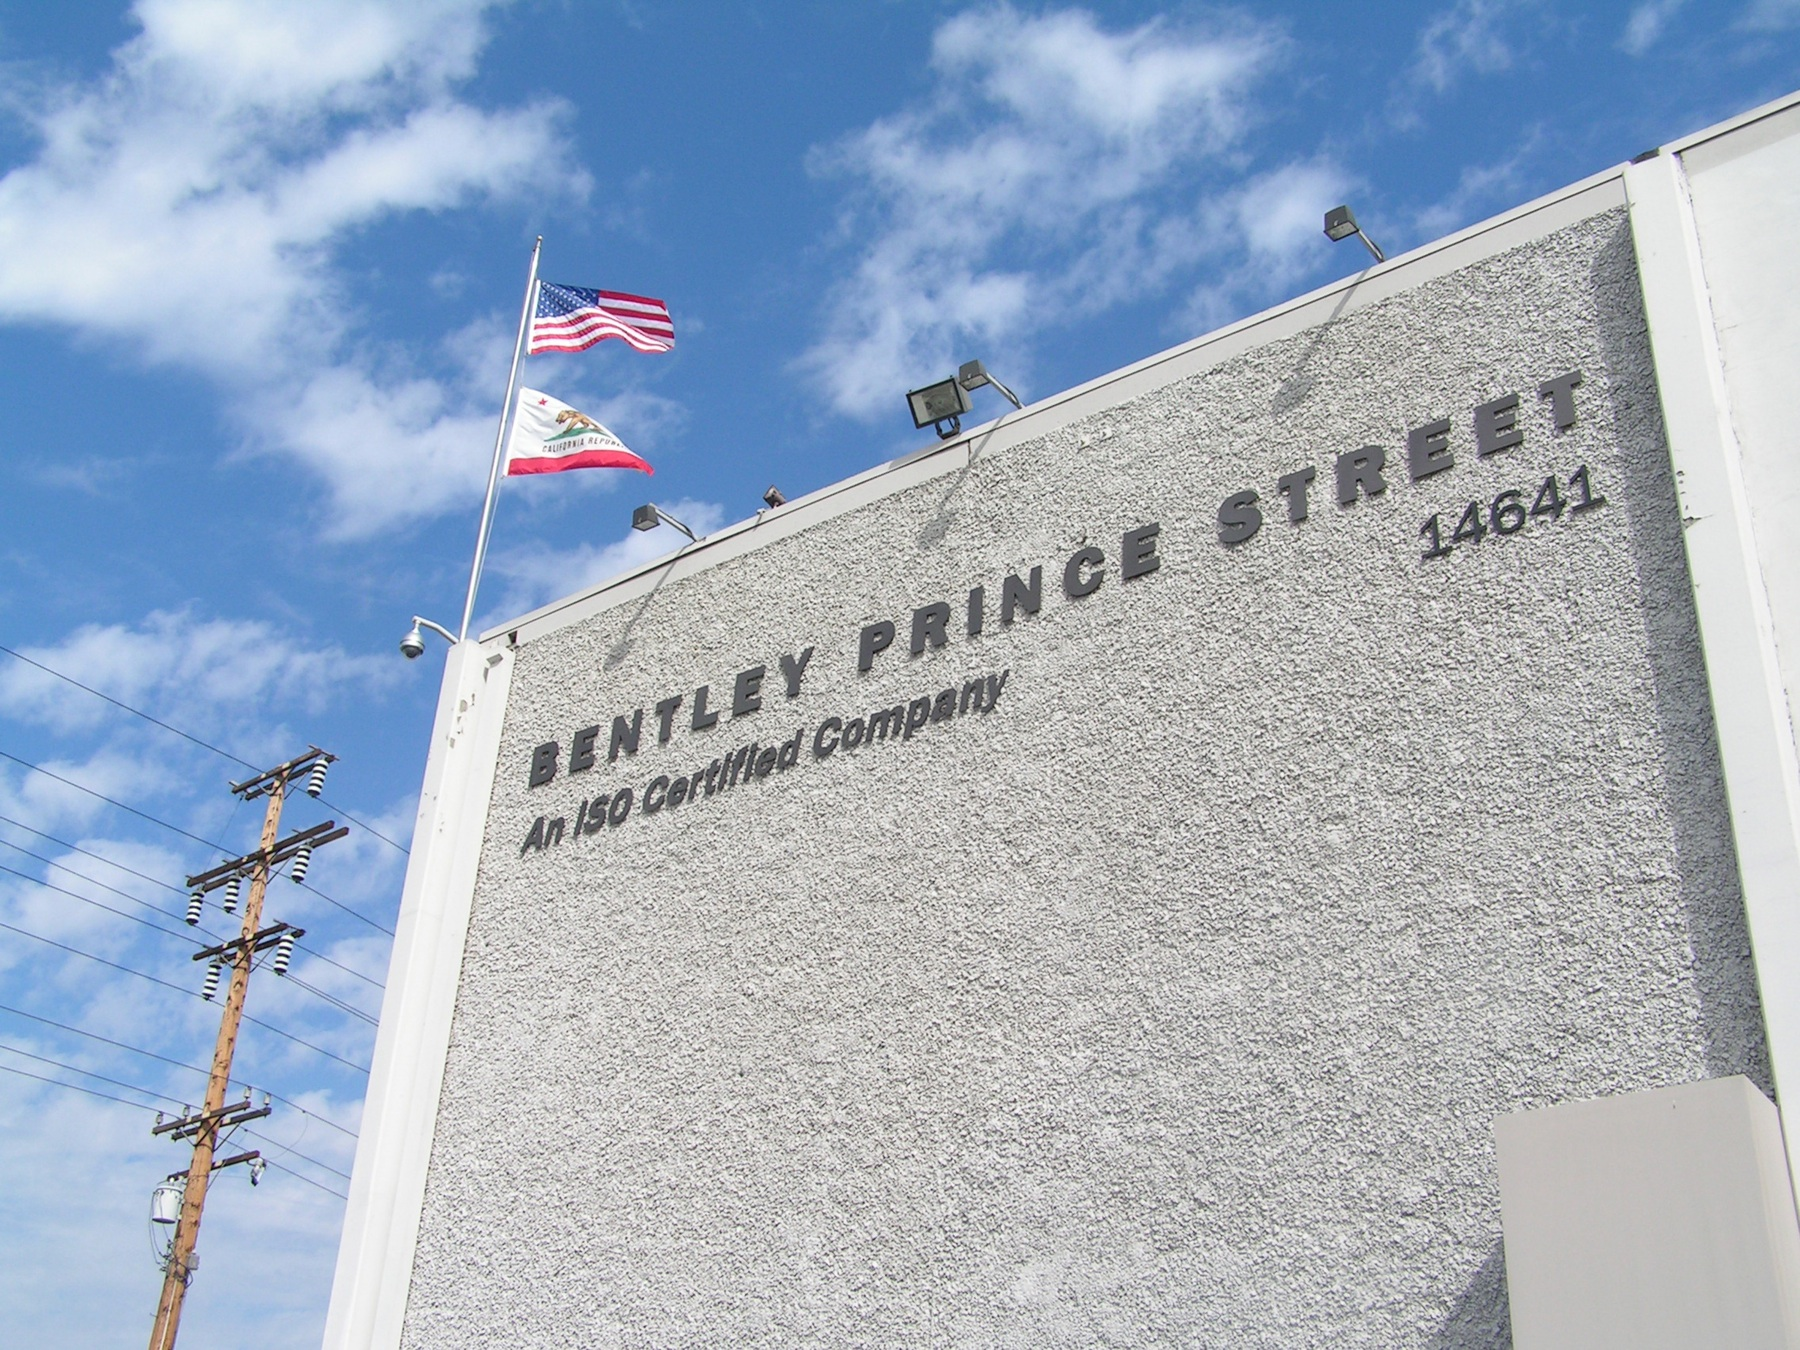 Bentley Prince Street's LEED-EB Silver Certified Mill in Los Angeles